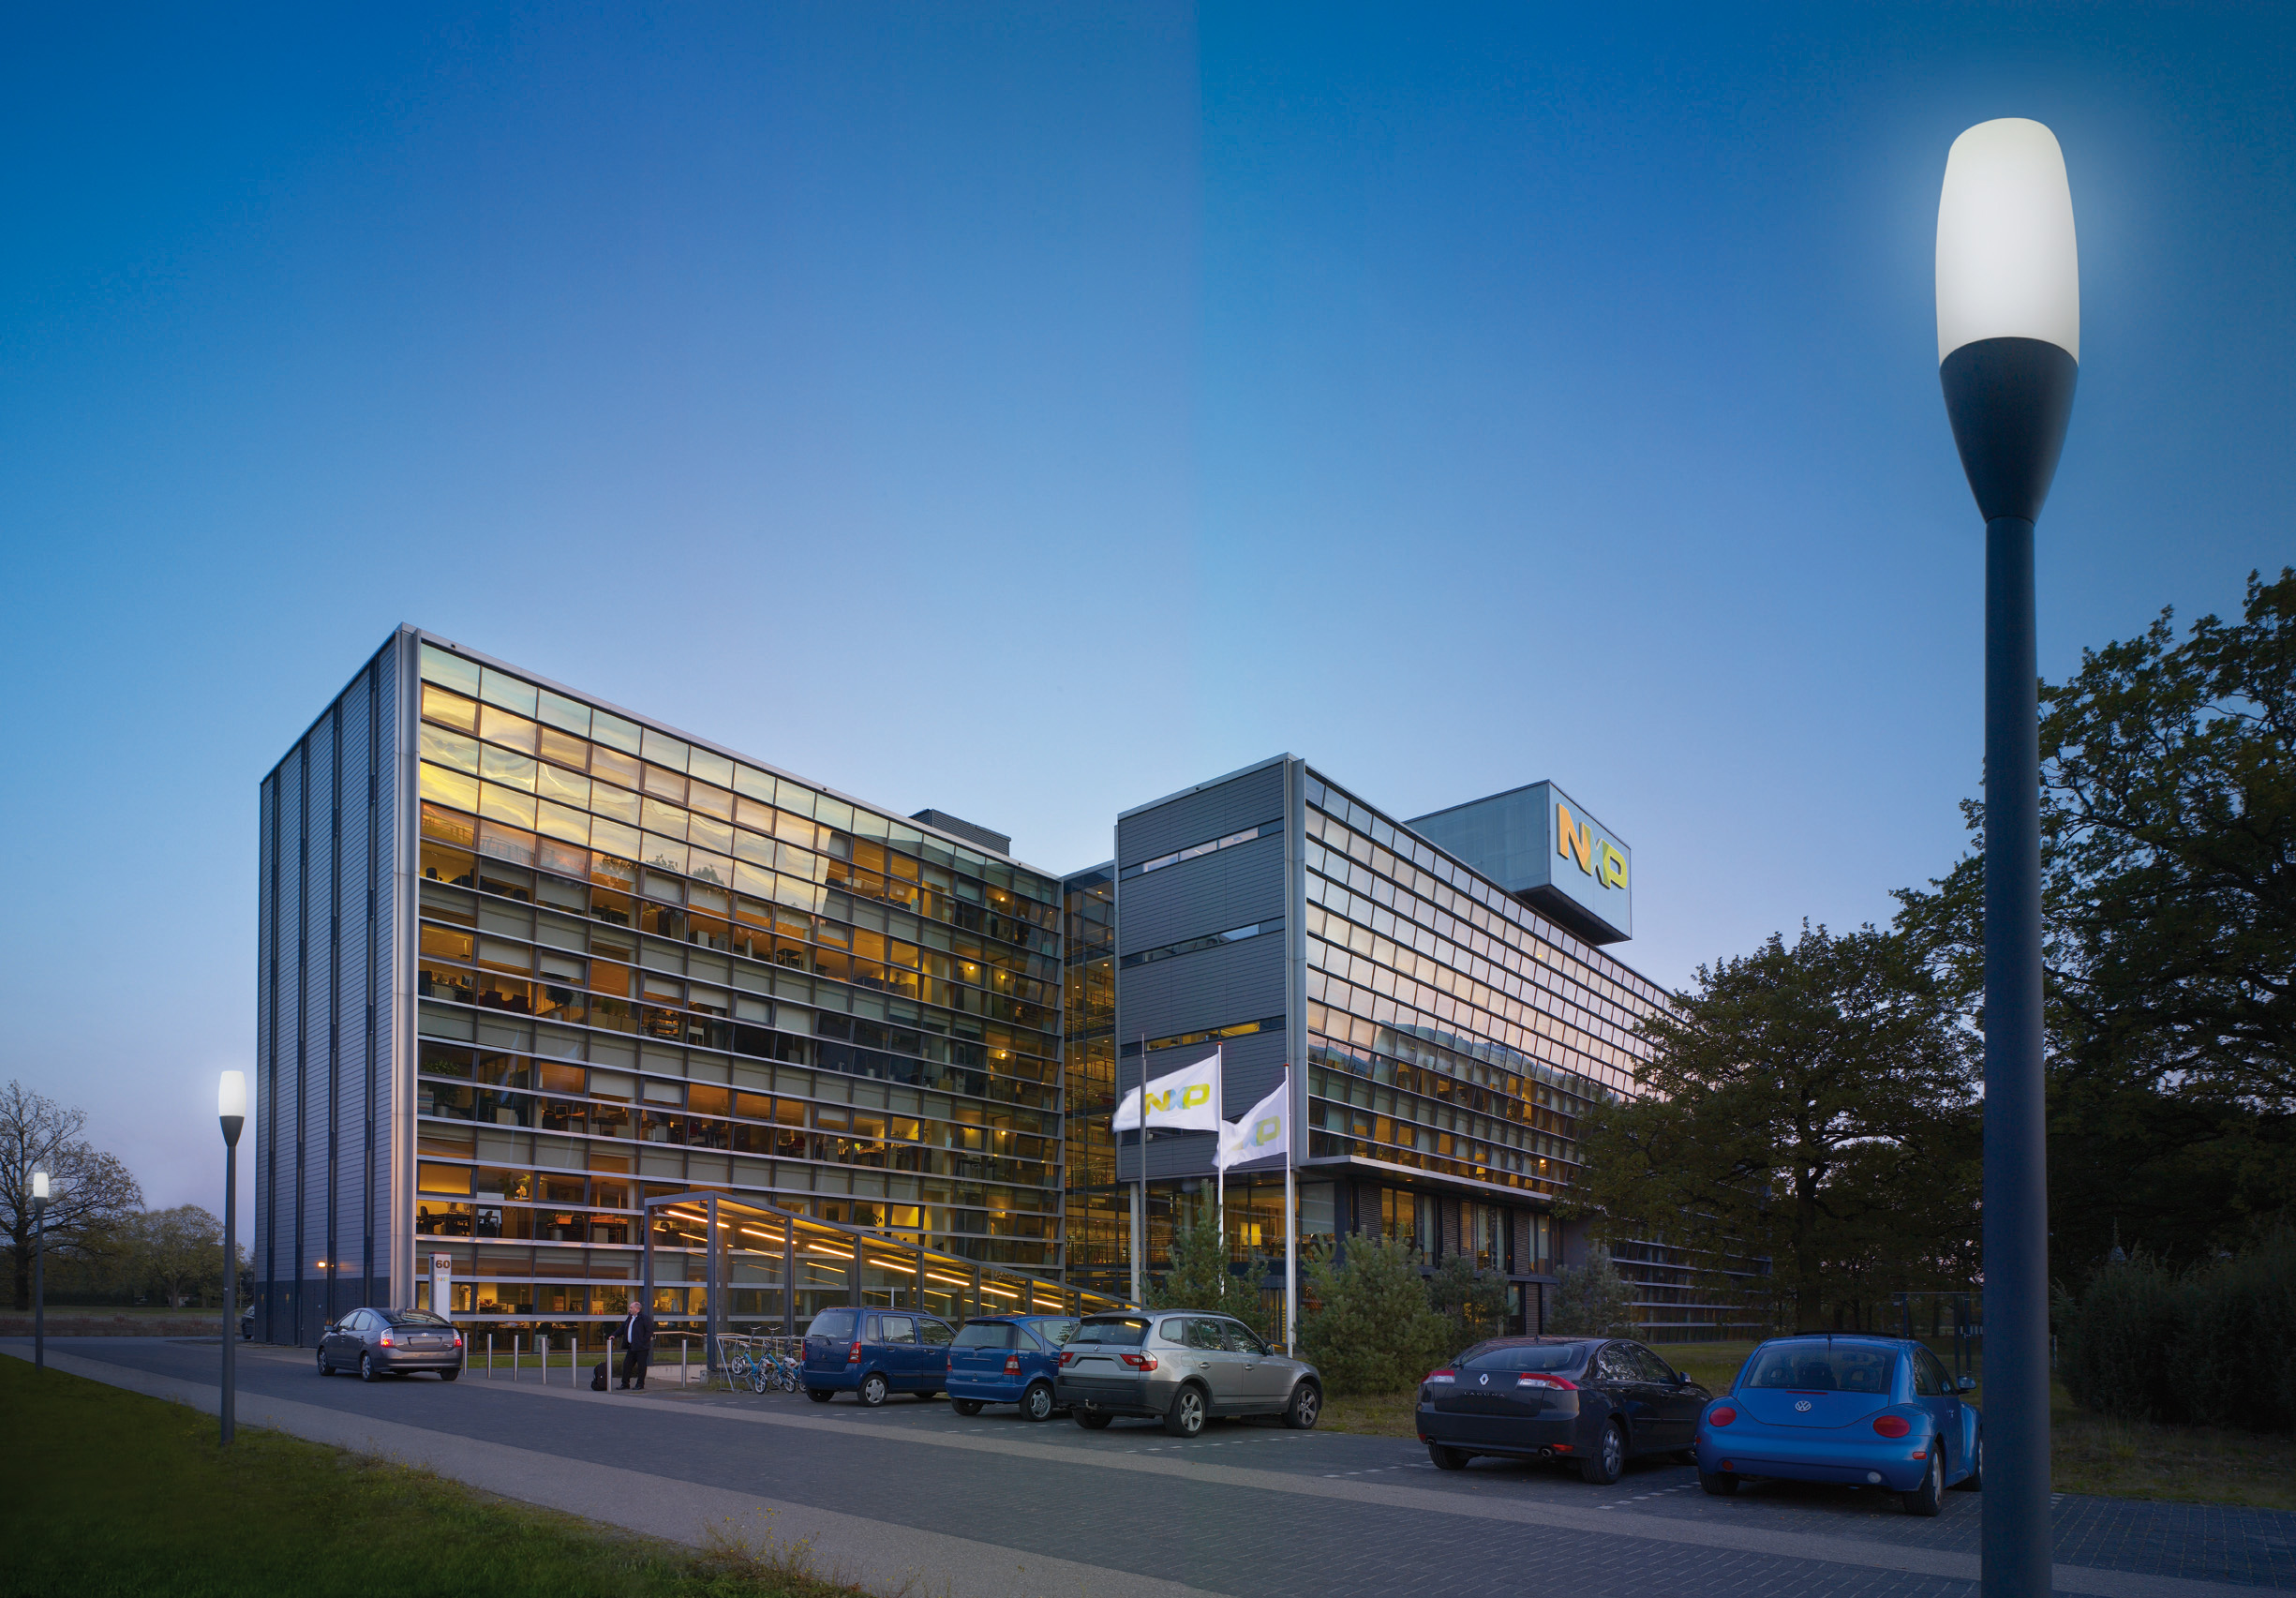 NXP world headquarters.